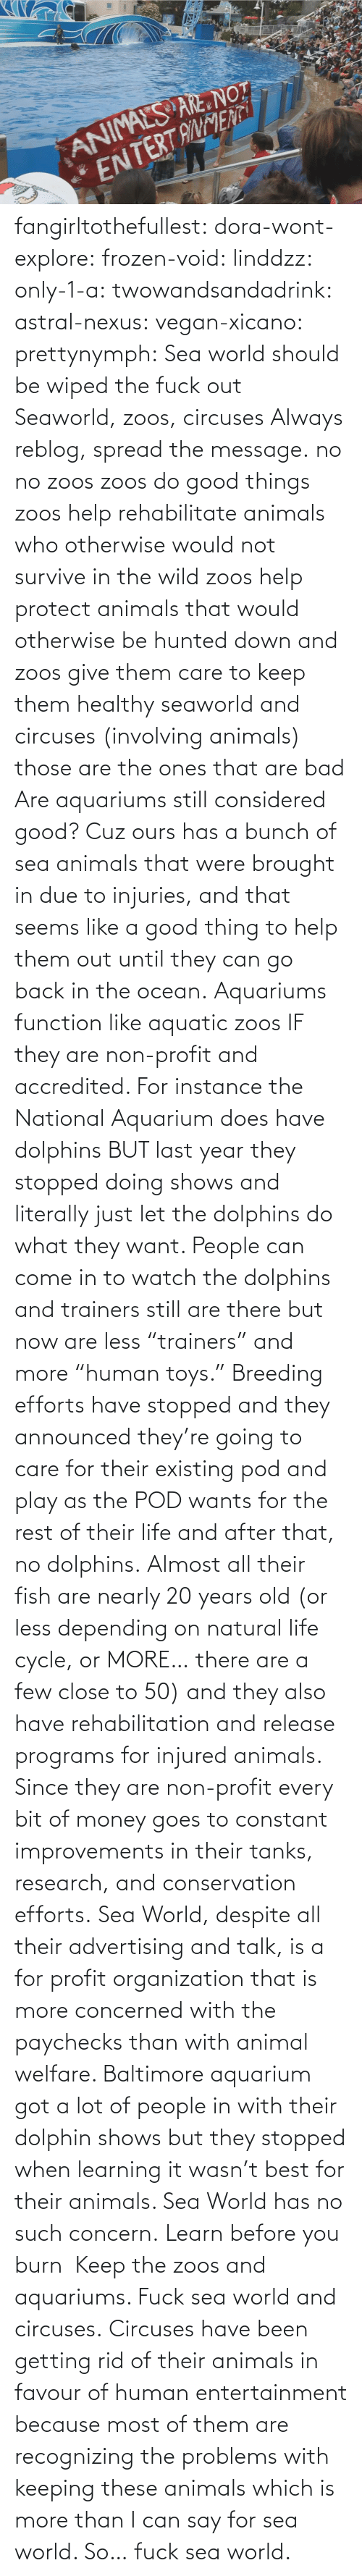 "Close To: fangirltothefullest:  dora-wont-explore:  frozen-void:  linddzz:  only-1-a:  twowandsandadrink:  astral-nexus:  vegan-xicano:  prettynymph:  Sea world should be wiped the fuck out  Seaworld, zoos, circuses  Always reblog, spread the message.  no no zoos zoos do good things zoos help rehabilitate animals who otherwise would not survive in the wild zoos help protect animals that would otherwise be hunted down and zoos give them care to keep them healthy seaworld and circuses (involving animals) those are the ones that are bad  Are aquariums still considered good? Cuz ours has a bunch of sea animals that were brought in due to injuries, and that seems like a good thing to help them out until they can go back in the ocean.  Aquariums function like aquatic zoos IF they are non-profit and accredited. For instance the National Aquarium does have dolphins BUT last year they stopped doing shows and literally just let the dolphins do what they want. People can come in to watch the dolphins and trainers still are there but now are less ""trainers"" and more ""human toys."" Breeding efforts have stopped and they announced they're going to care for their existing pod and play as the POD wants for the rest of their life and after that, no dolphins. Almost all their fish are nearly 20 years old (or less depending on natural life cycle, or MORE… there are a few close to 50) and they also have rehabilitation and release programs for injured animals. Since they are non-profit every bit of money goes to constant improvements in their tanks, research, and conservation efforts. Sea World, despite all their advertising and talk, is a for profit organization that is more concerned with the paychecks than with animal welfare. Baltimore aquarium got a lot of people in with their dolphin shows but they stopped when learning it wasn't best for their animals. Sea World has no such concern.  Learn before you burn   Keep the zoos and aquariums. Fuck sea world and circuses.  Circuses have been getting rid of  their animals in favour of human entertainment because most of them are recognizing the problems with keeping these animals which is more than I can say for sea world. So… fuck sea world."